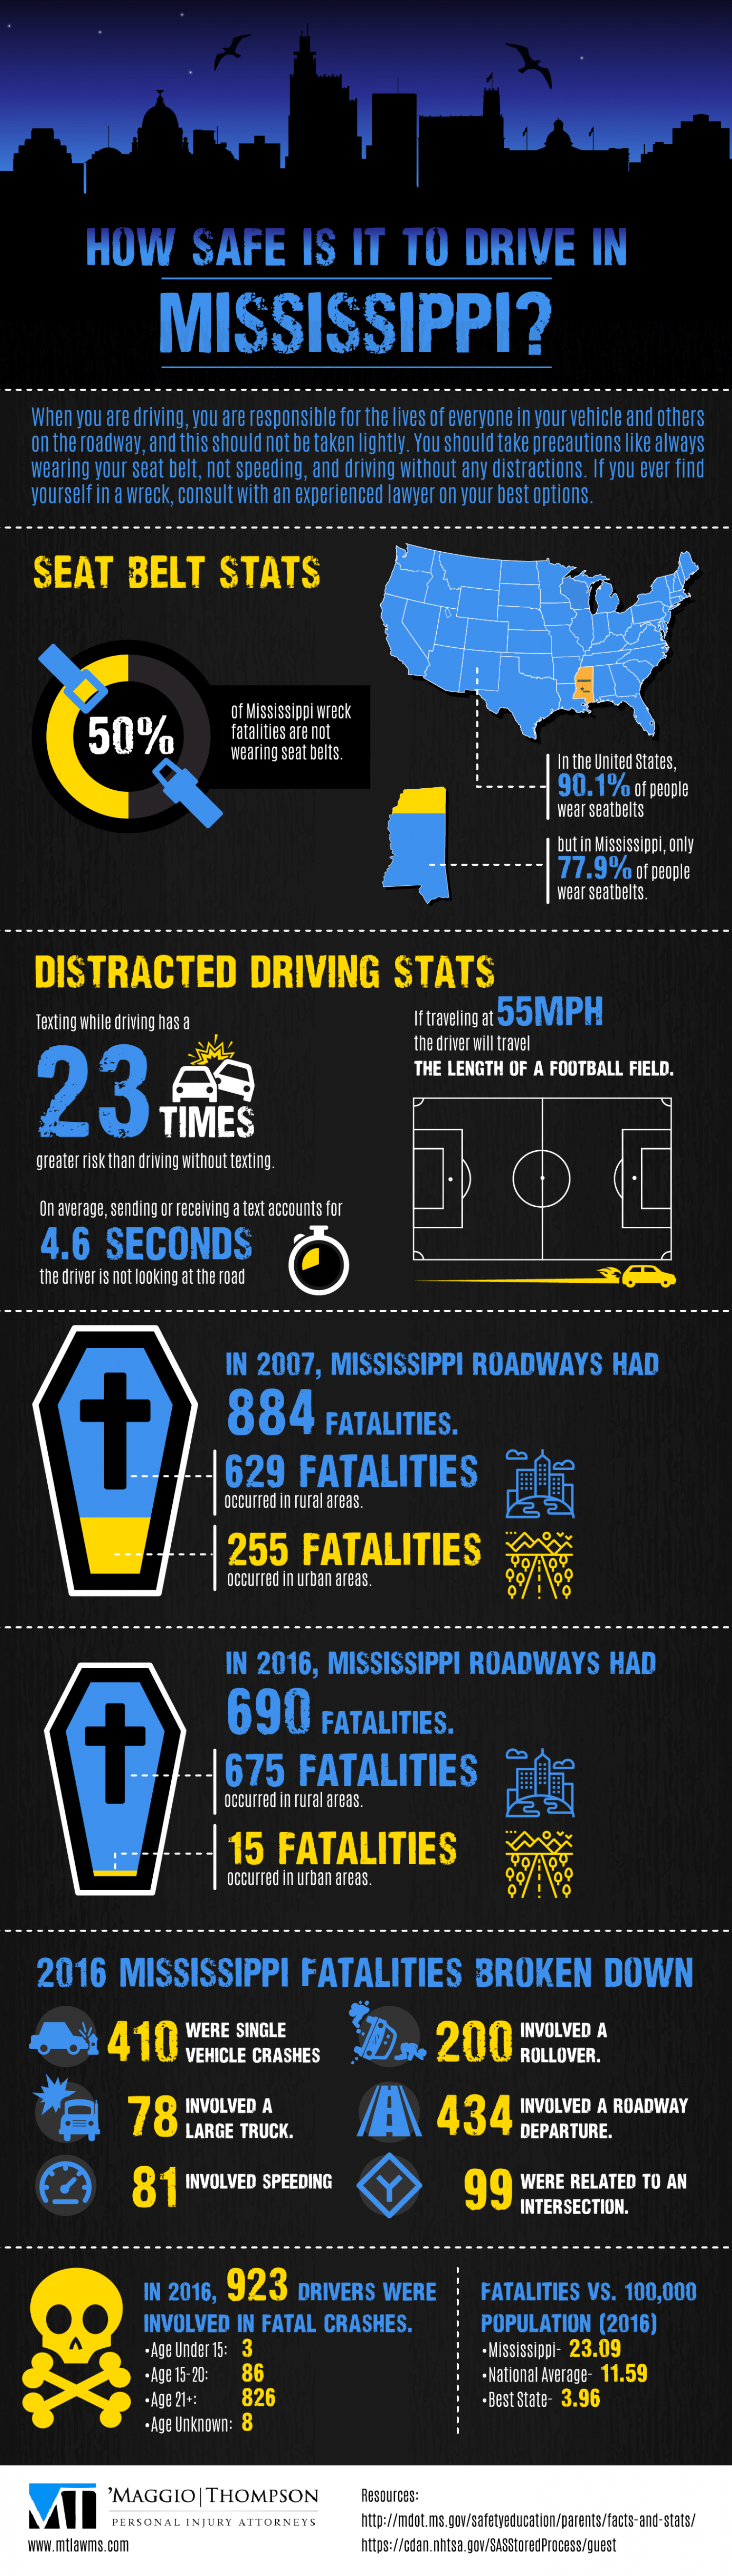 How Safe Is It To Drive In Mississippi? Infographic